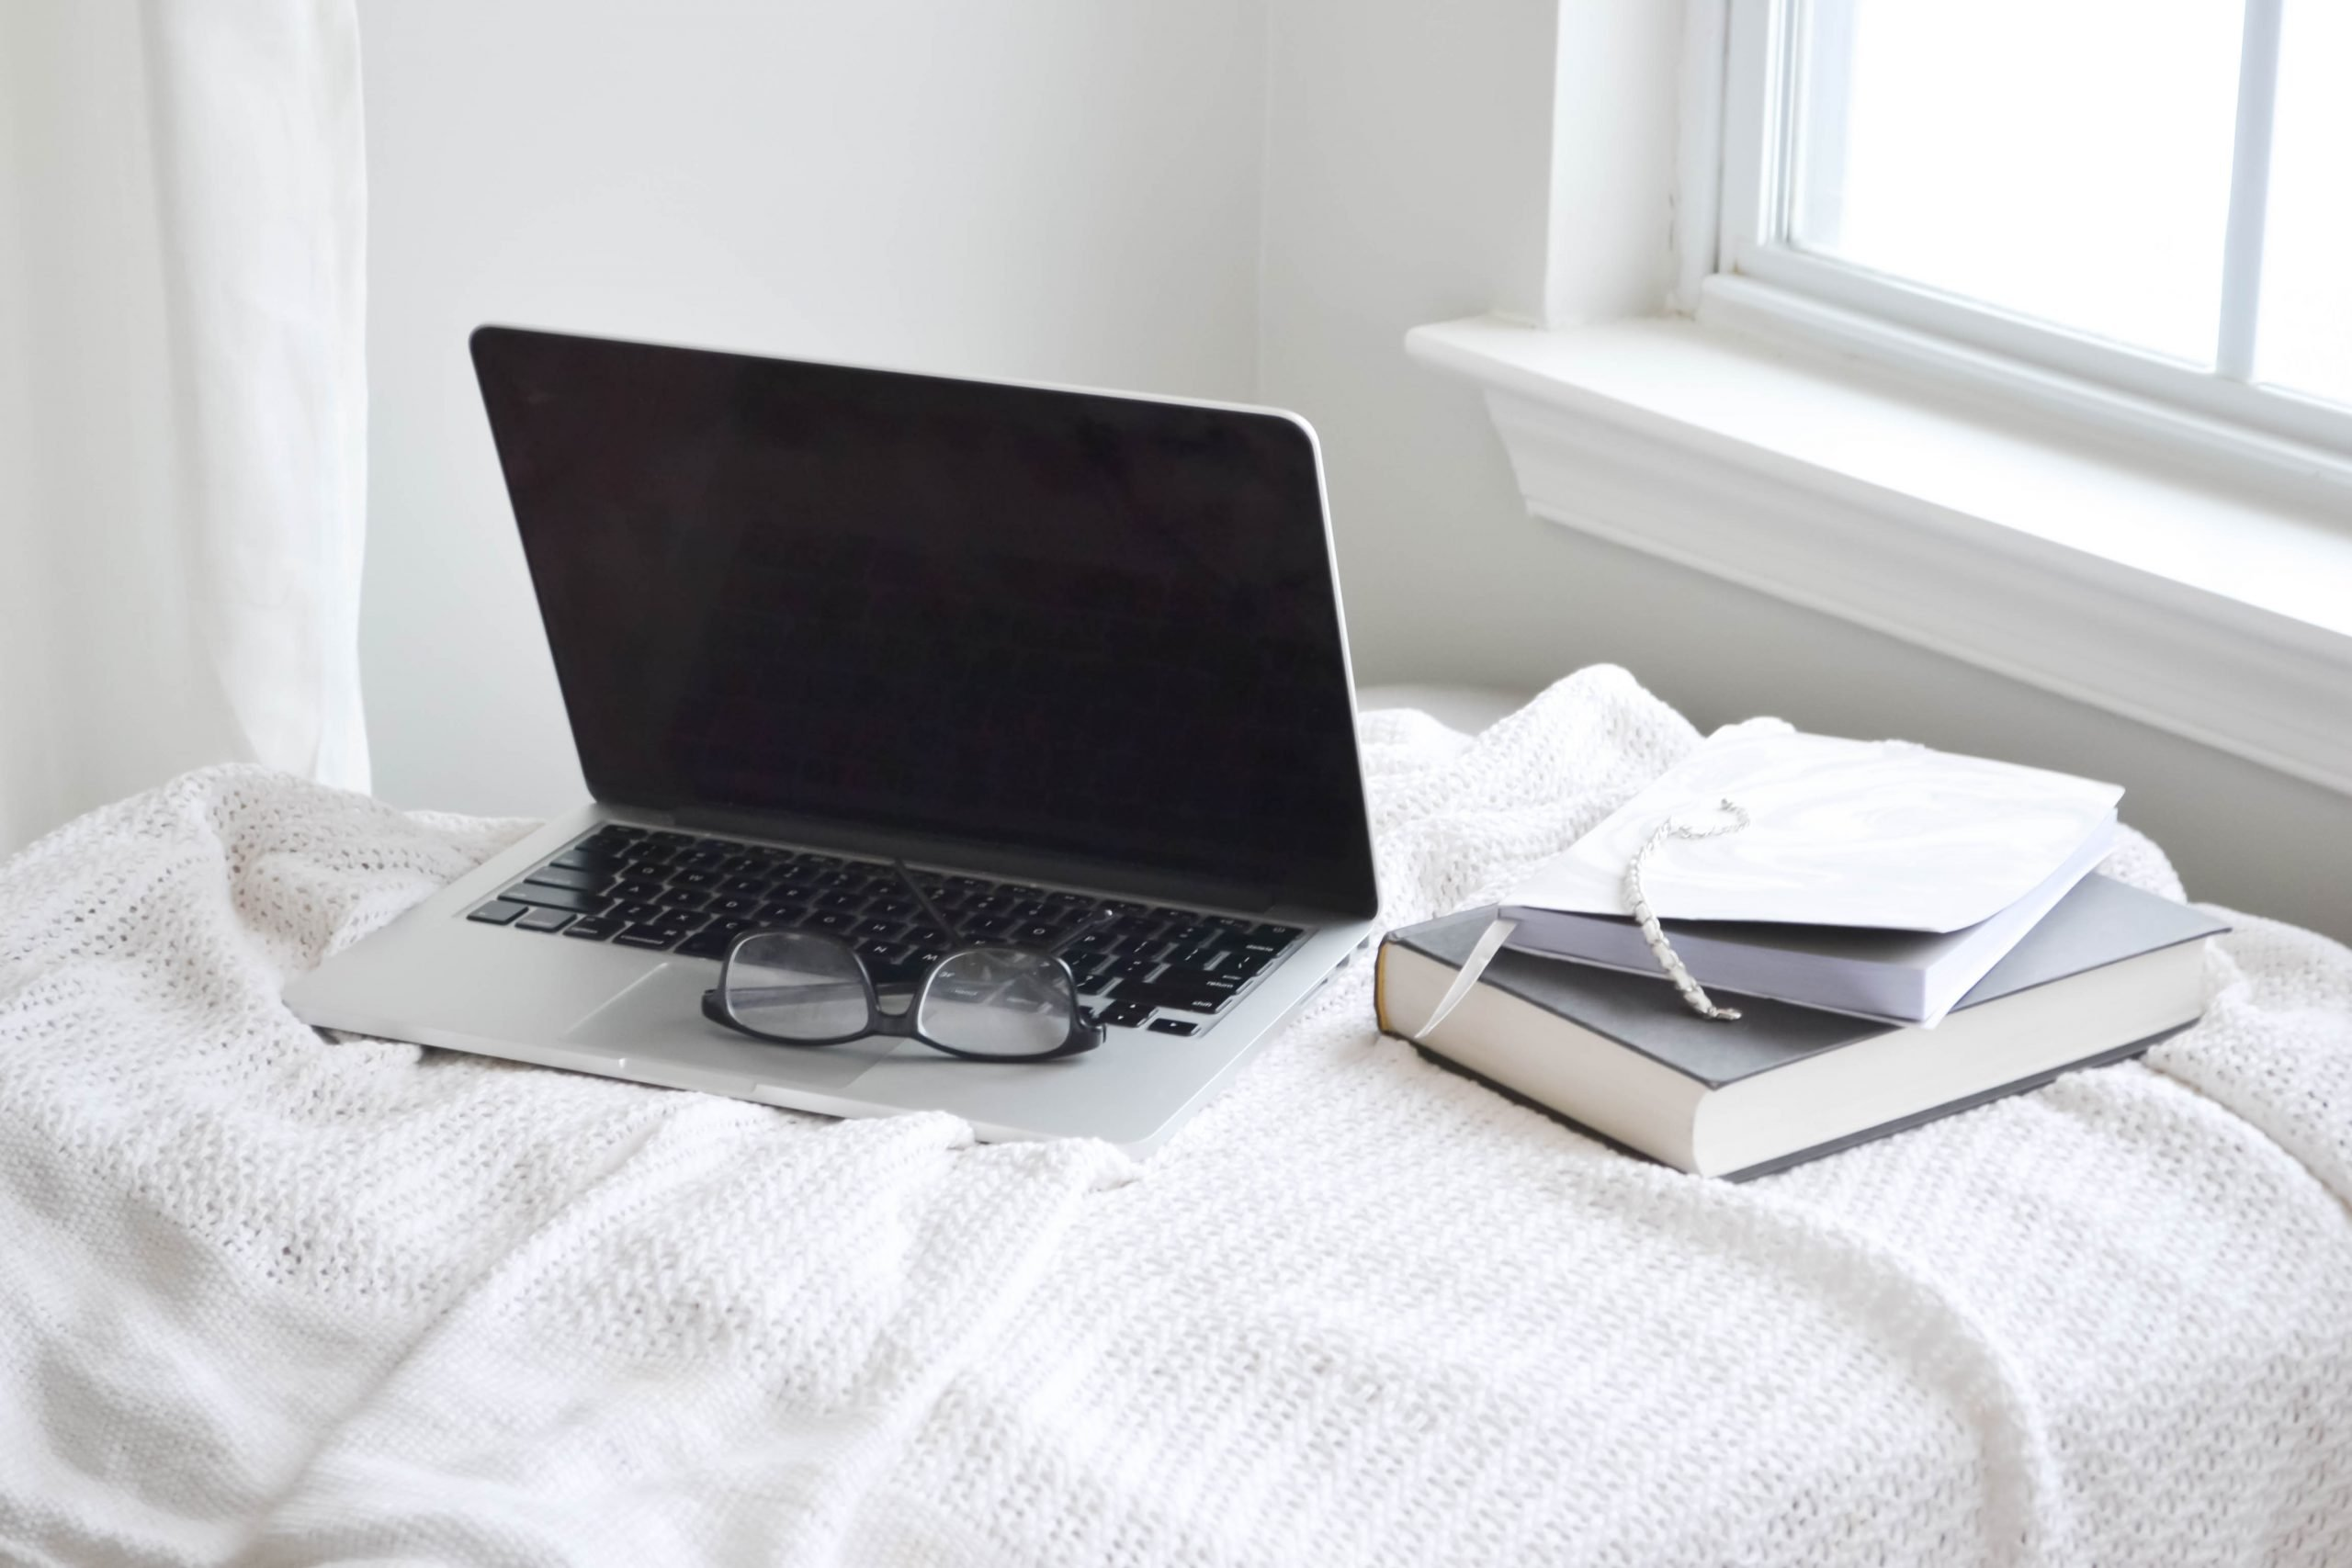 Make more money working from home as a freelance writer with these 7 must-have tools. With them you can connect with more clients, increase sales, and grow your business. #freelancewriting #creativeentrepreneur #workfromhome